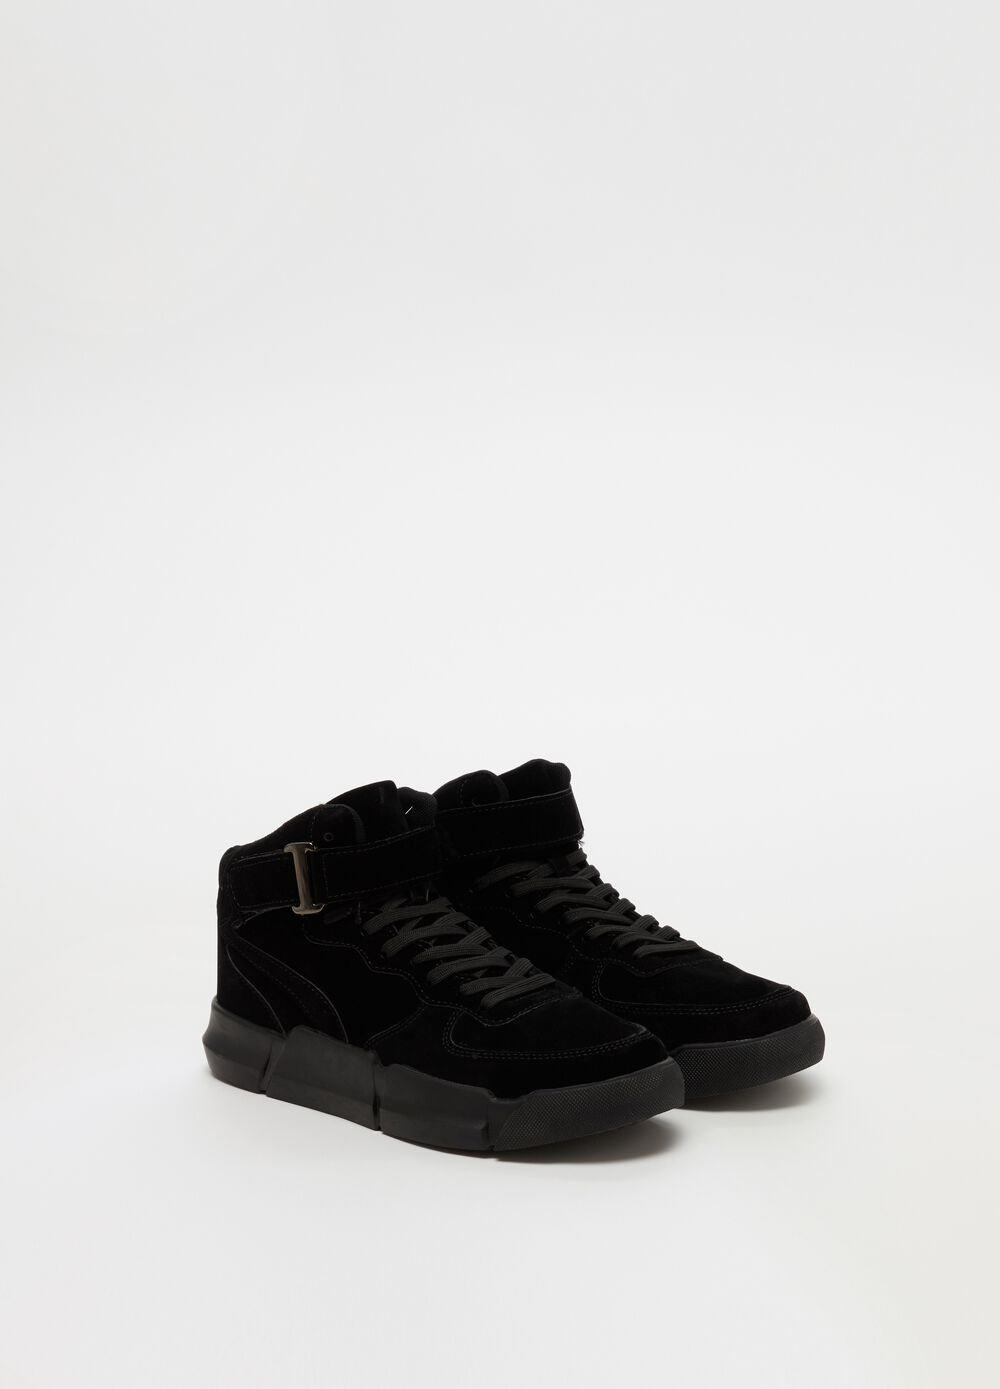 High-top velvet lace-up sneakers